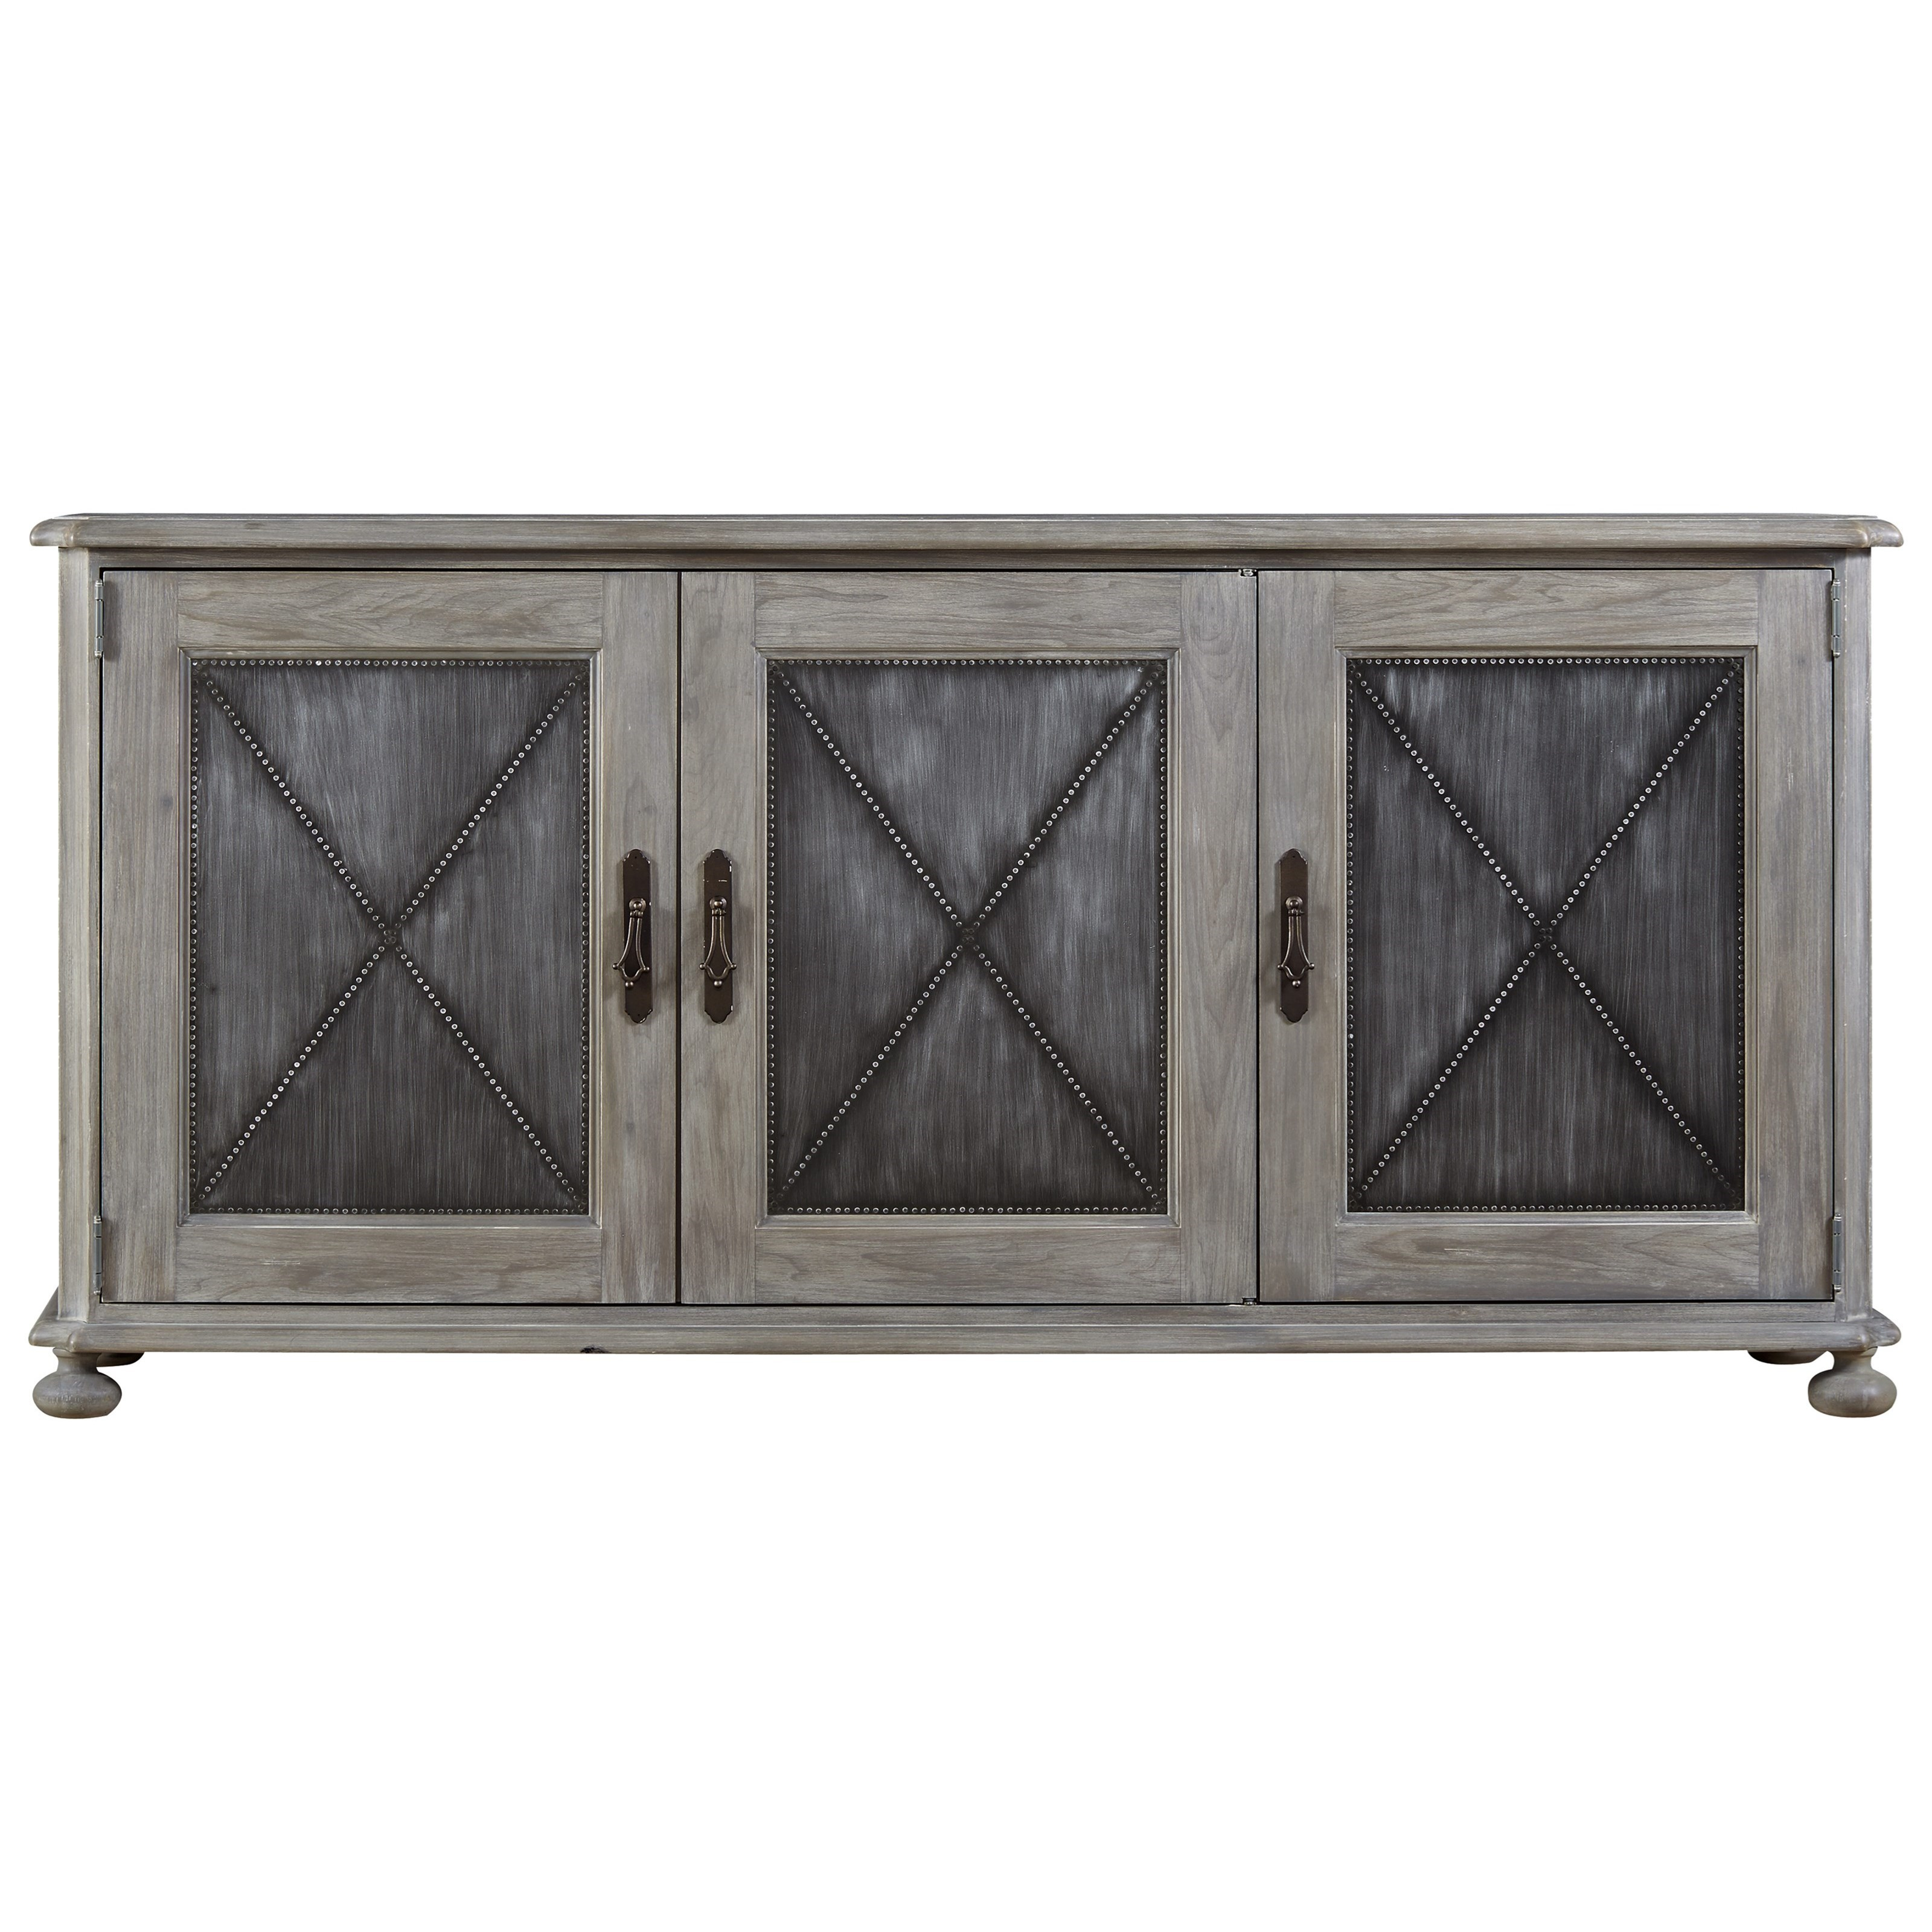 Universal Curated Glenmore Sideboard - Item Number: 558779